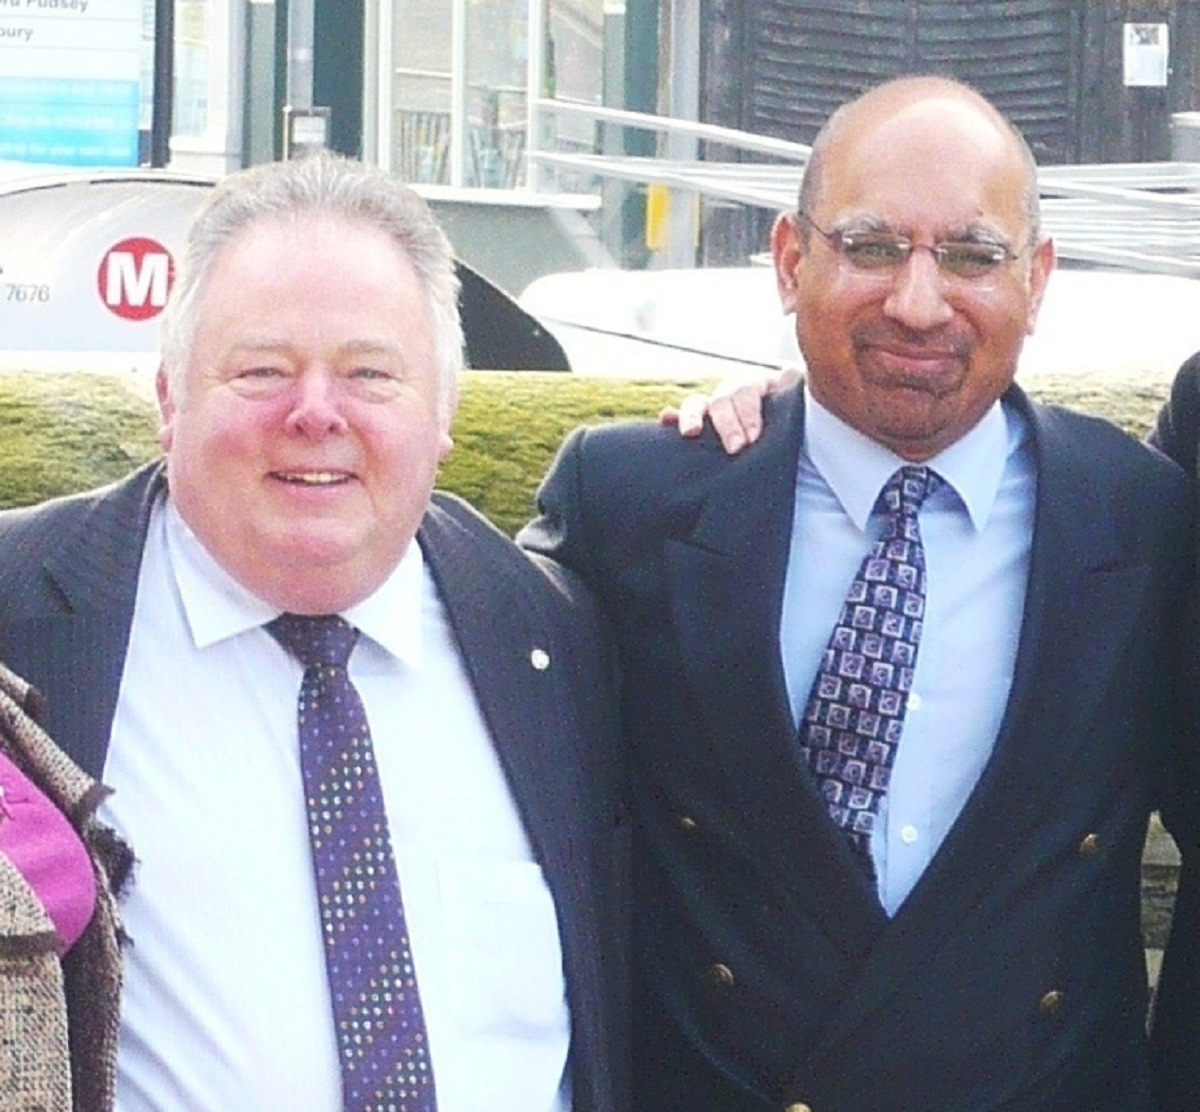 Keith Madeley, left, with Zulfi Hussain